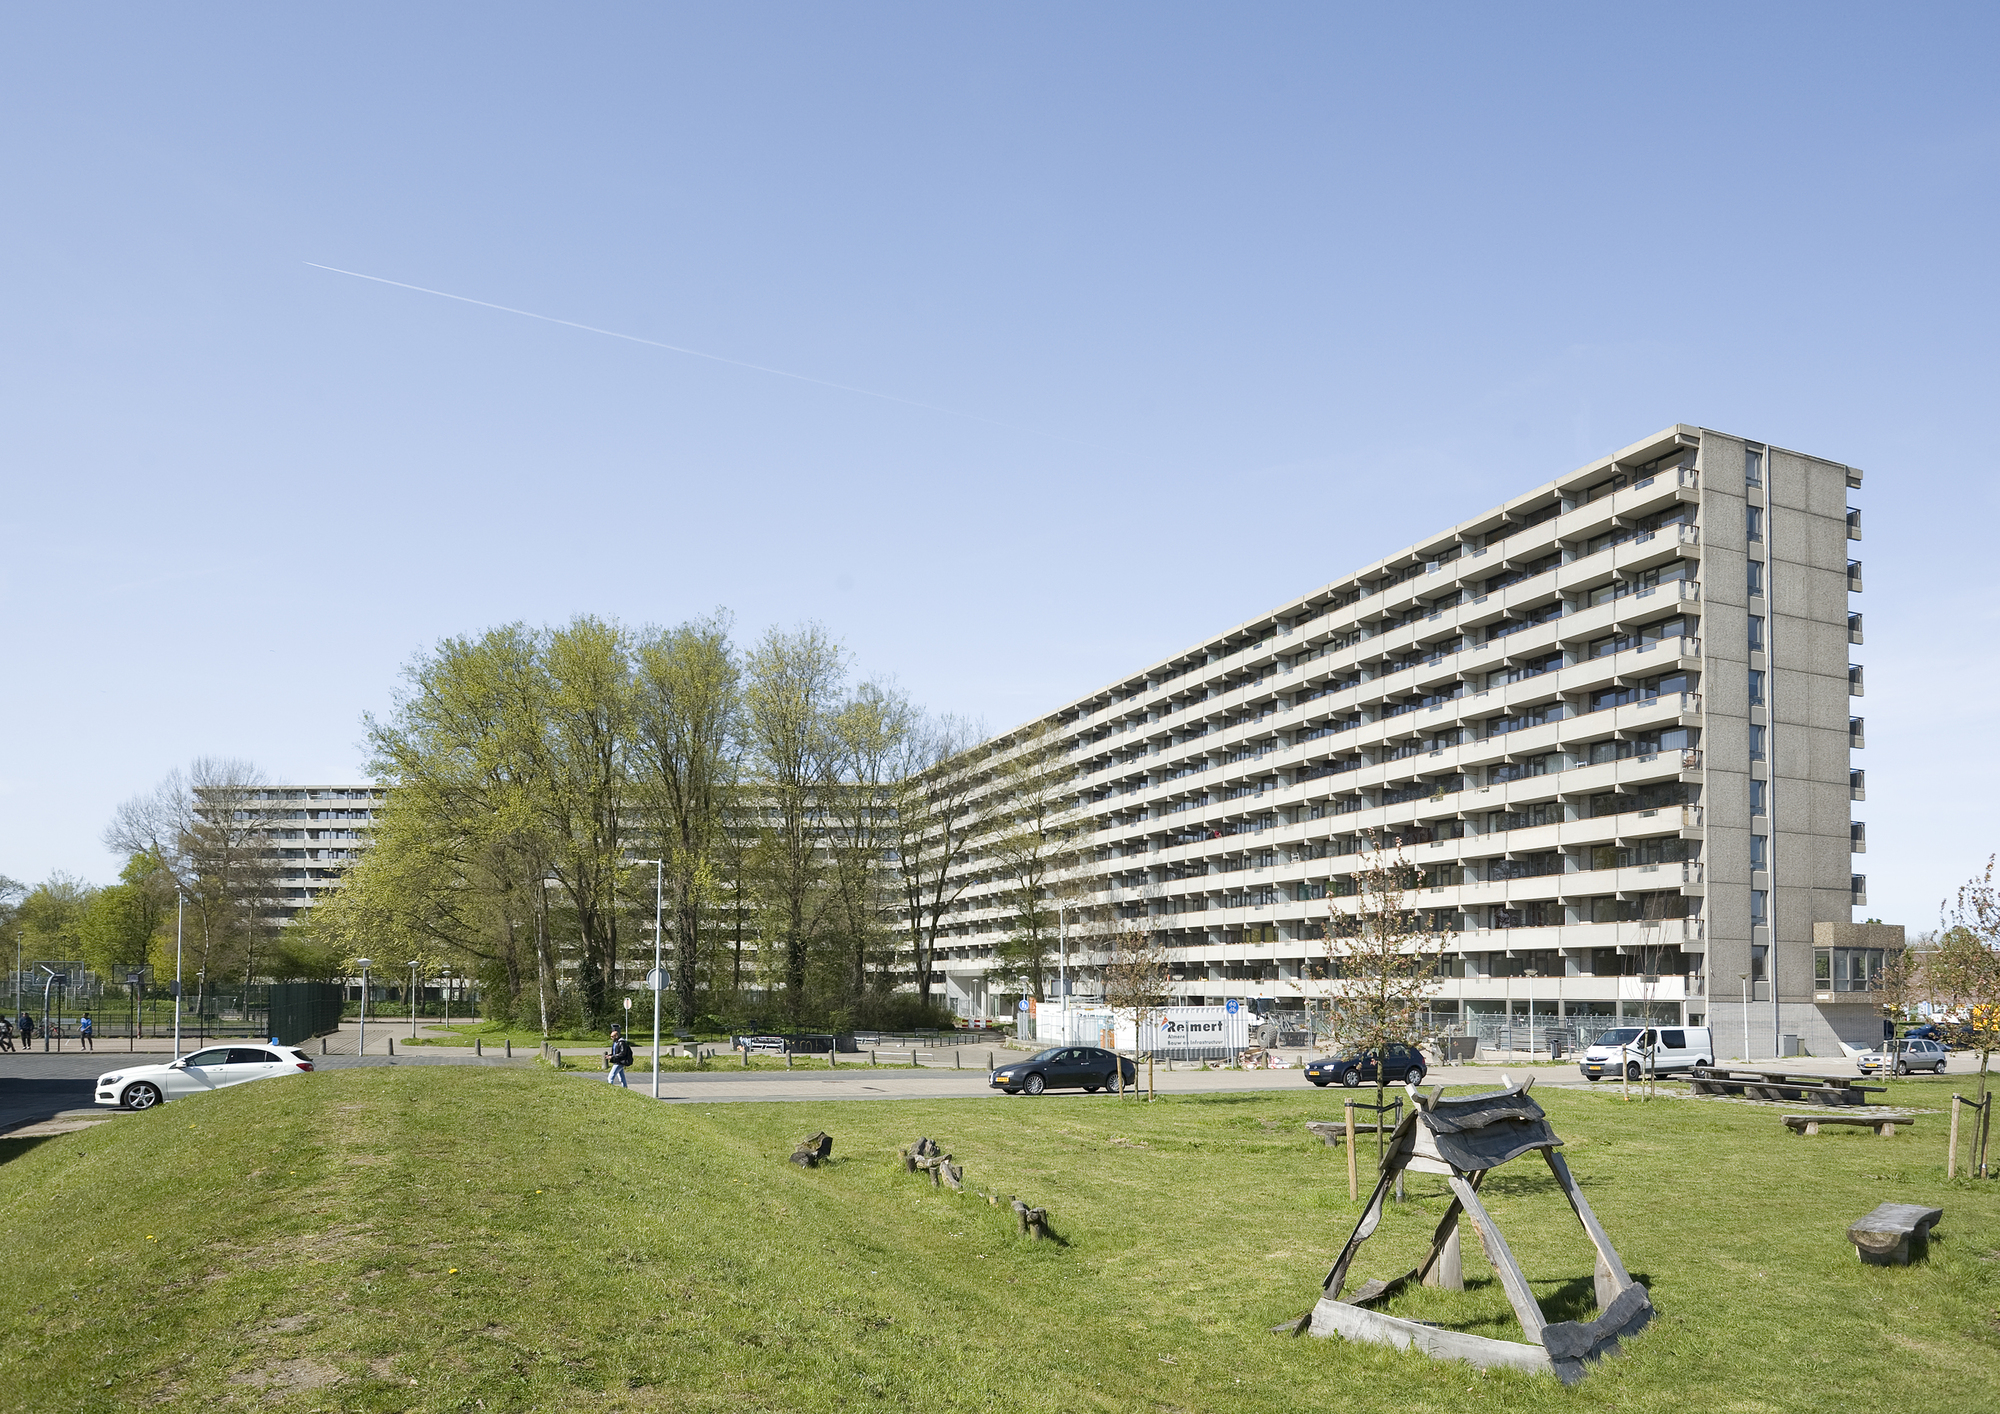 Architecture from The Netherlands | ArchDaily